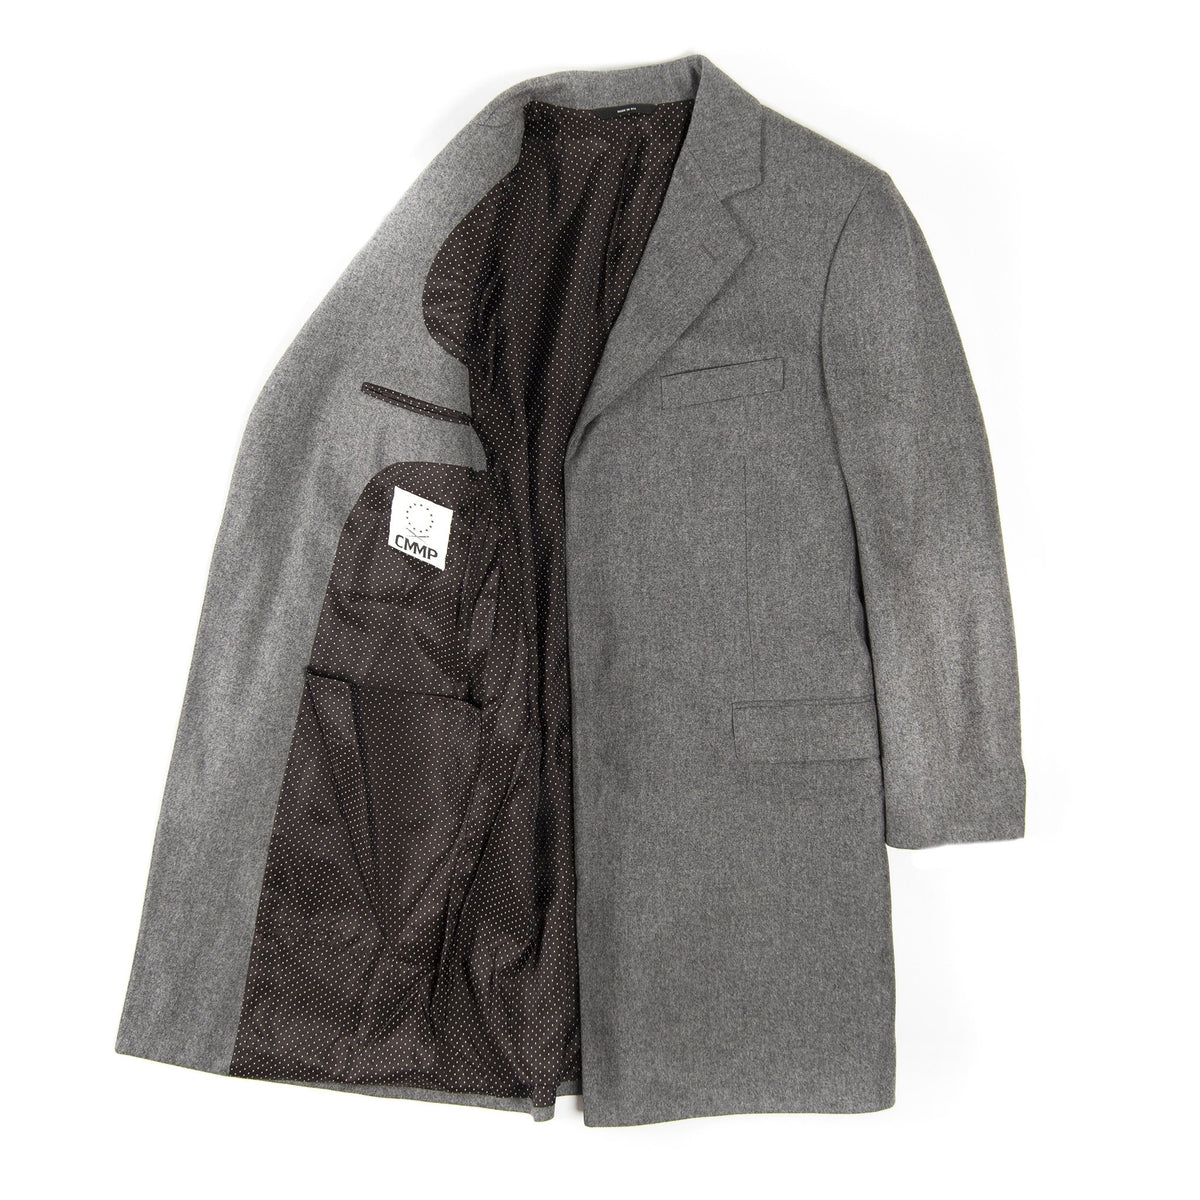 Topley Flyfront Topcoat - Grey